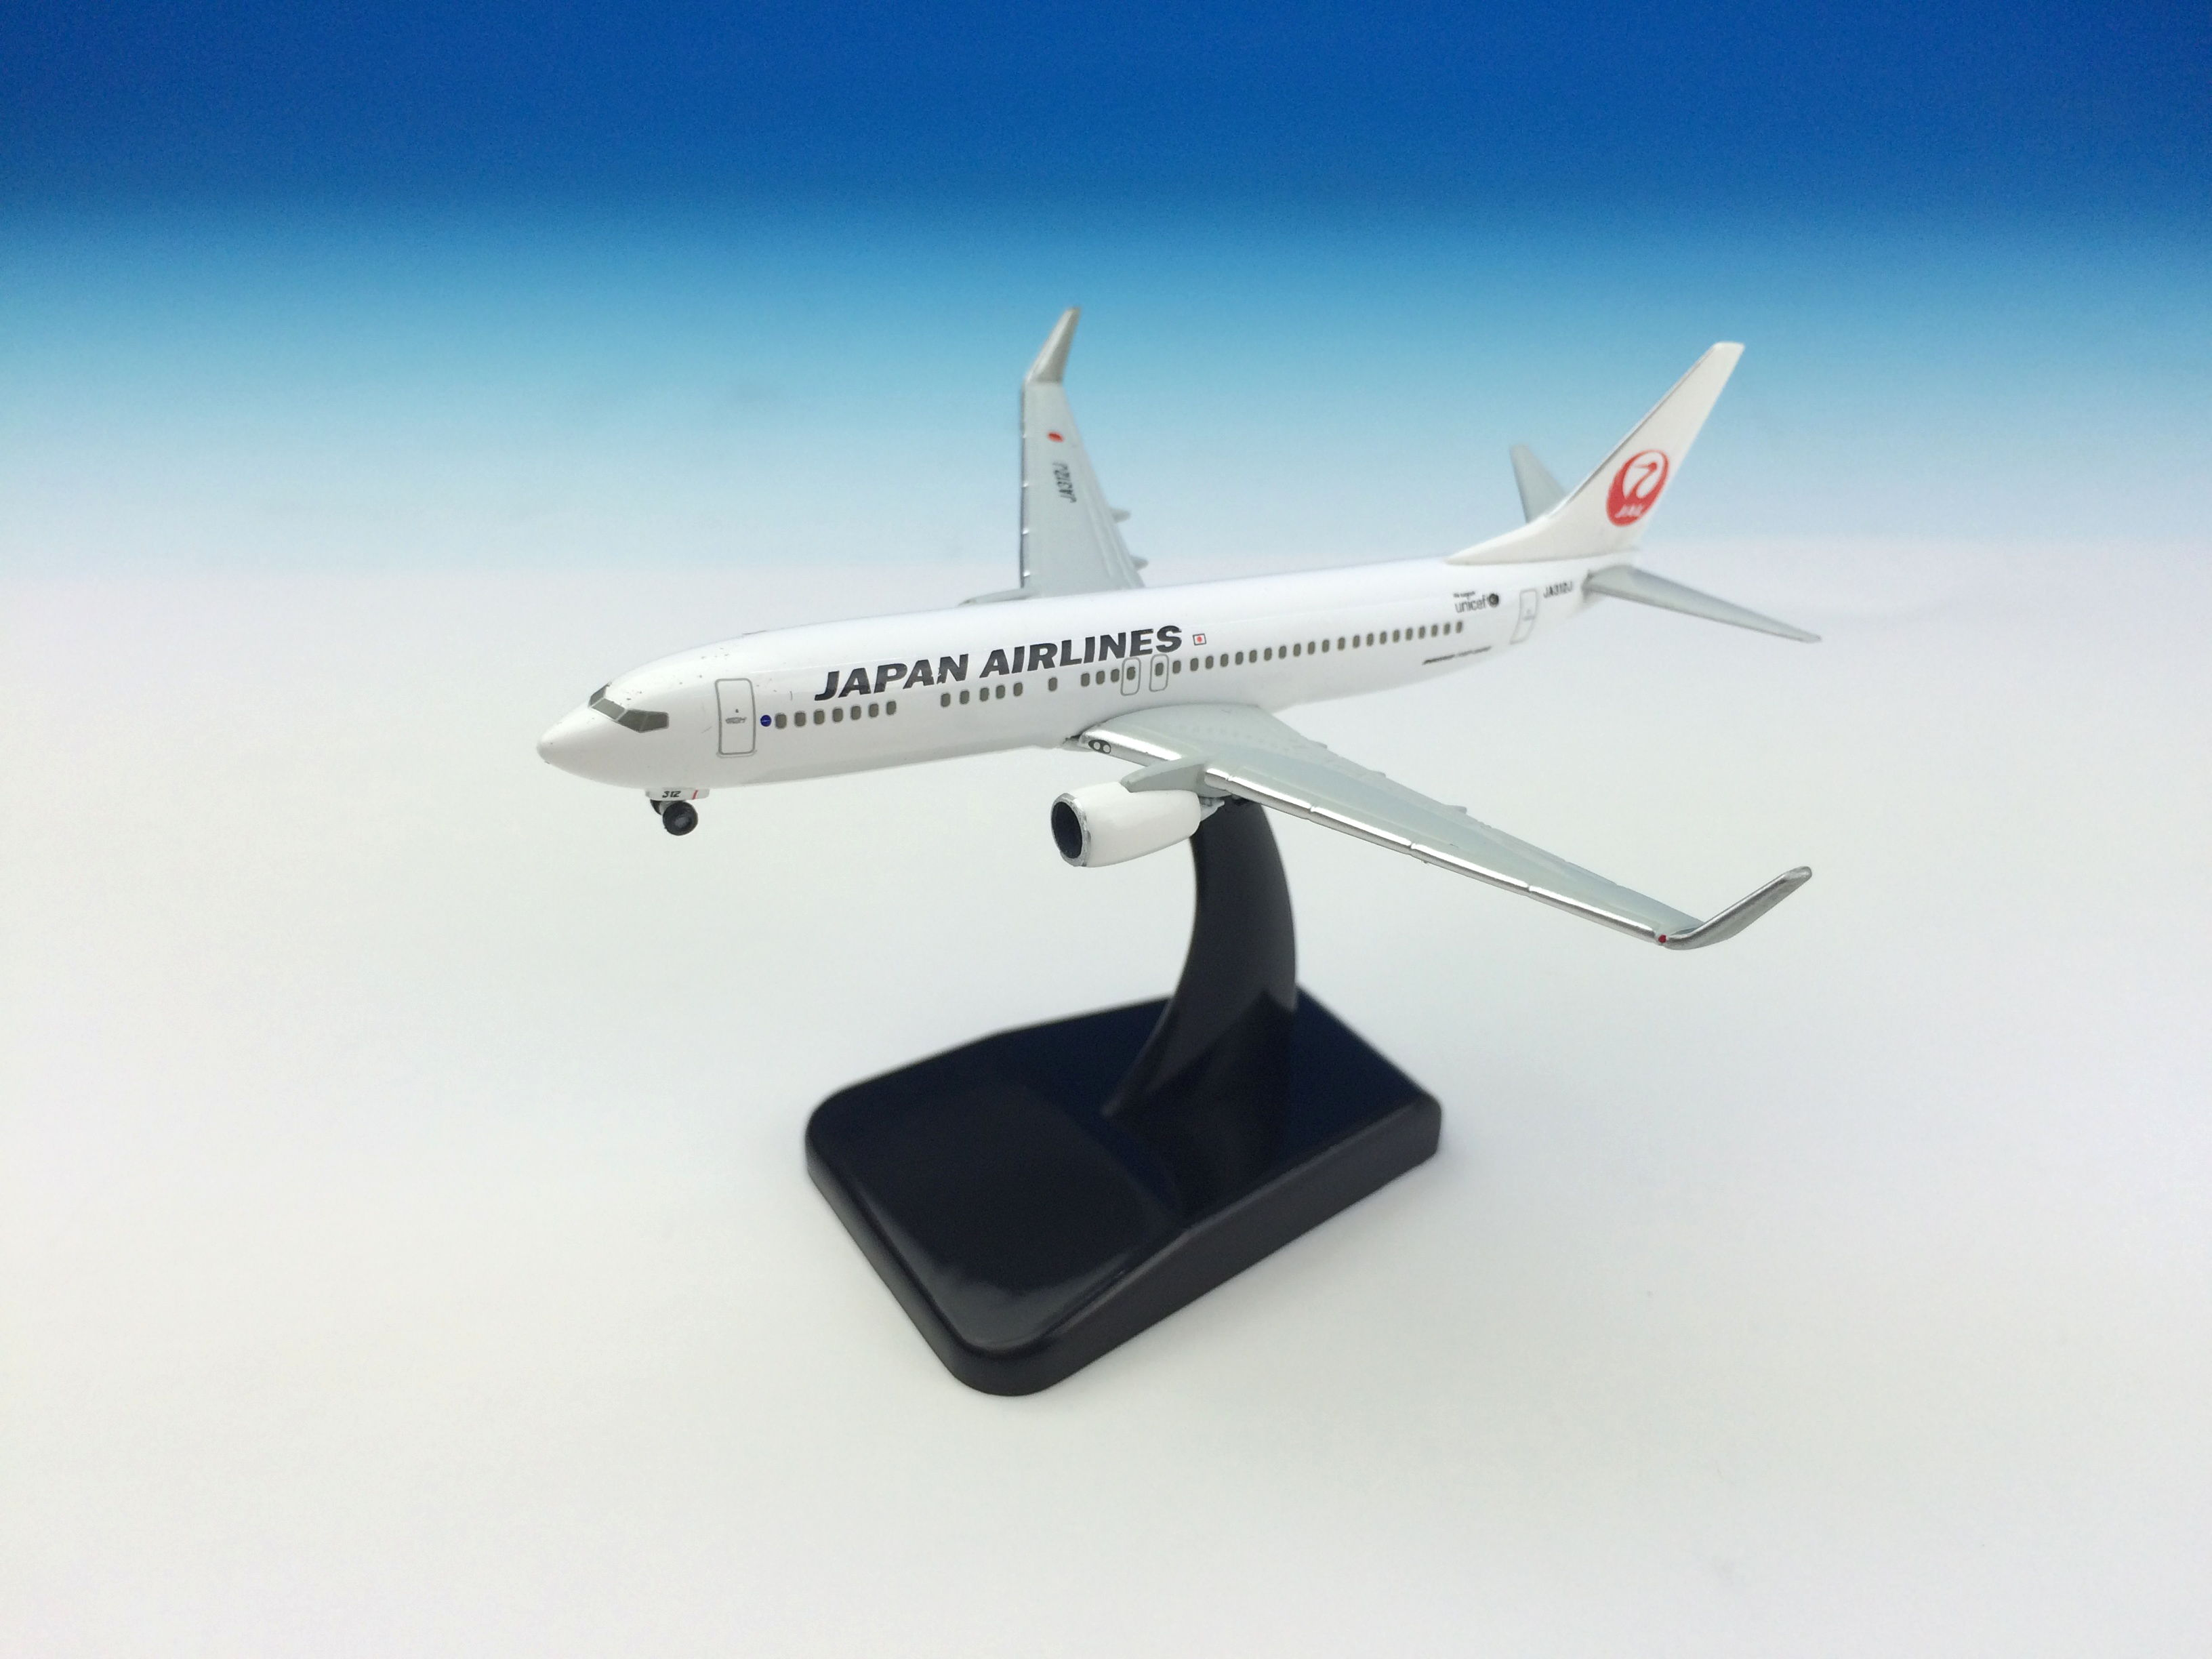 JAL/日本航空 JAL 737-800 1:500 ダイキャストモデル